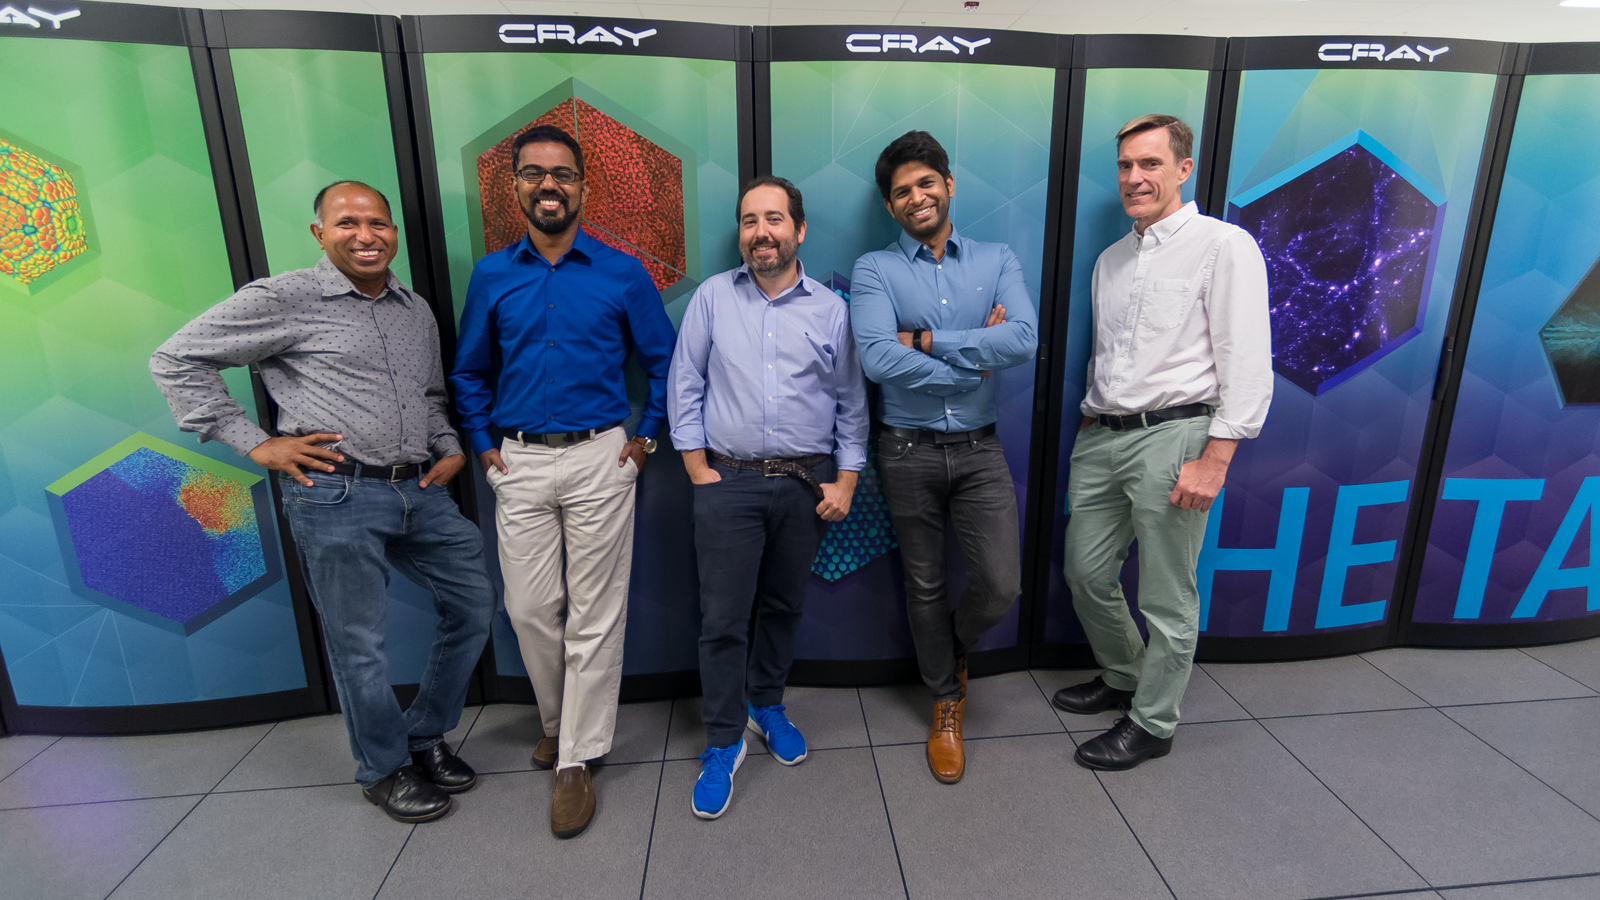 This team took steps in physics, computer science and materials science in order to design and test a new computer chip that can perform and adapt well on a minuscule amount of power. From left to right: Anil Mane, Prasanna Balaprakash, Angel Yanguas-Gil, Sandeep Madireddy and Jeff Elam.